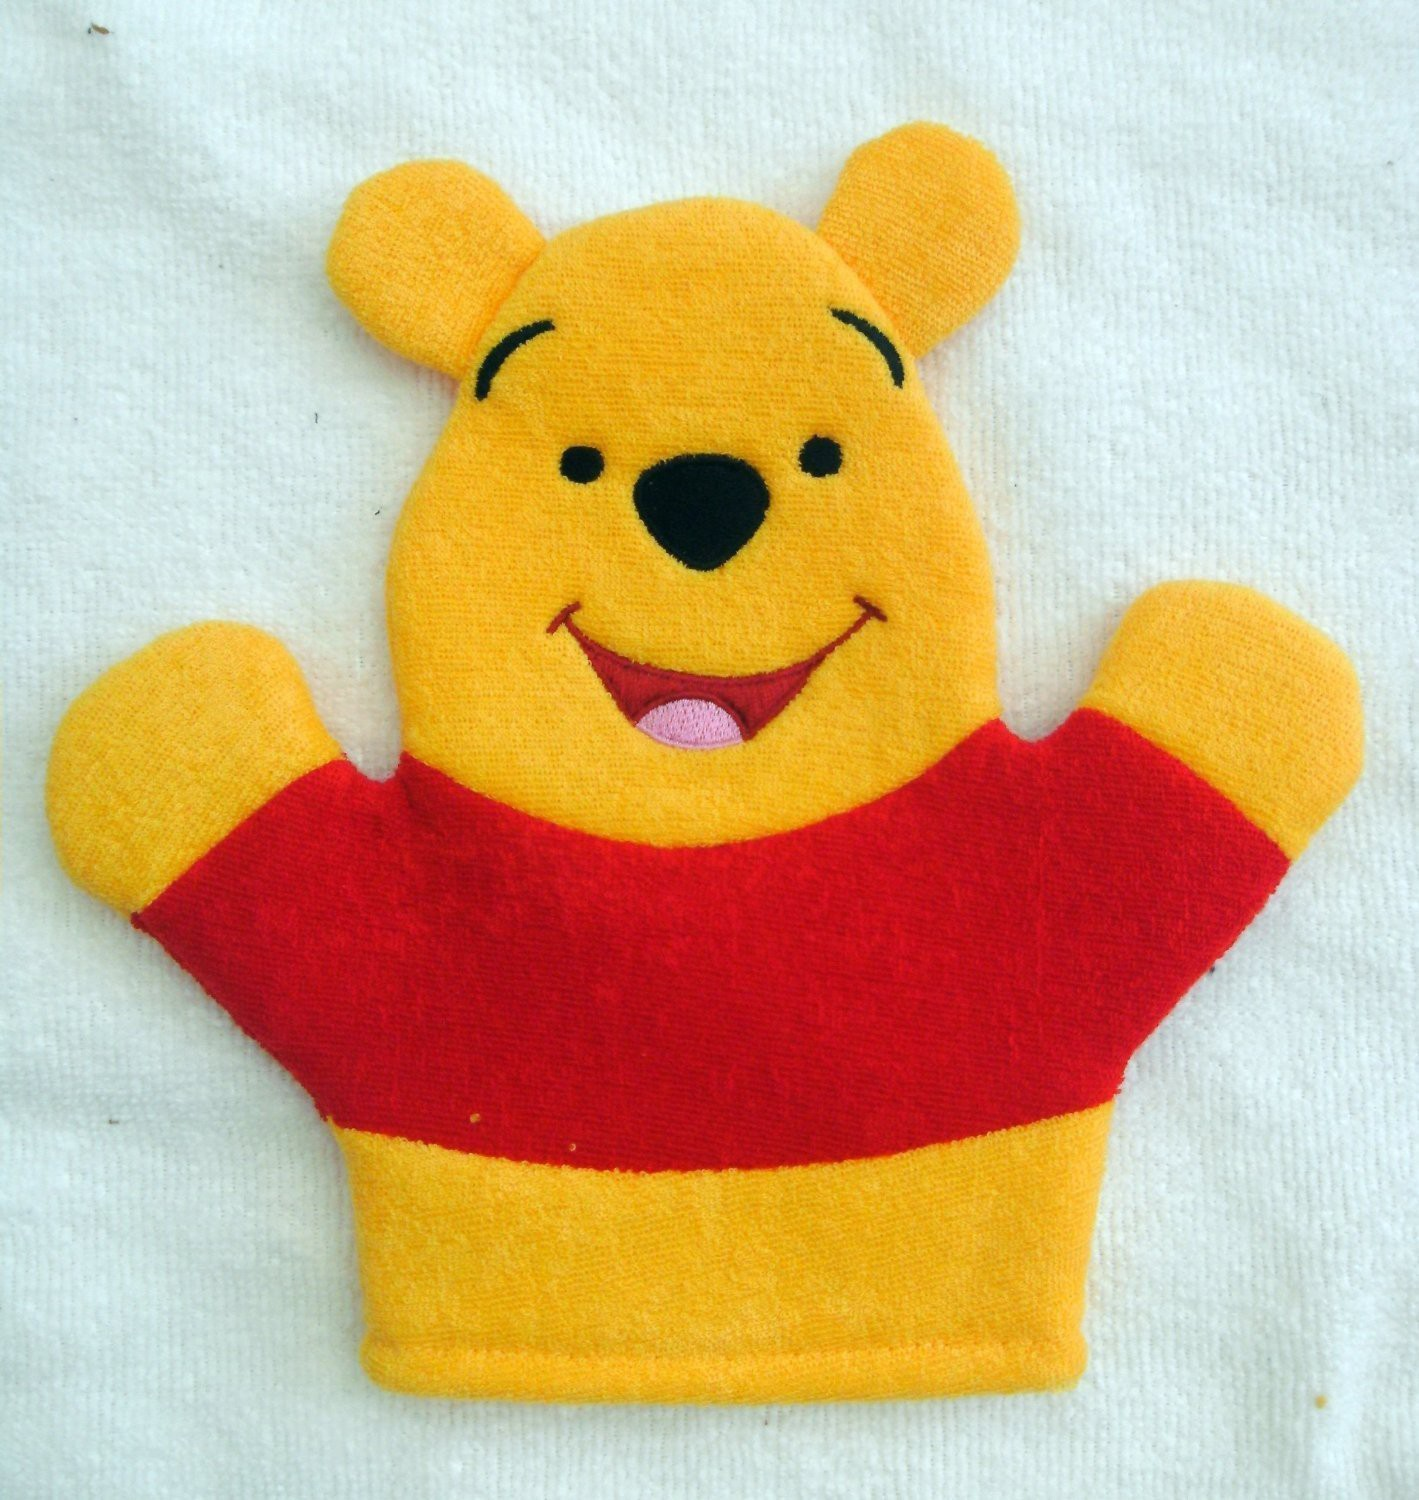 Baby Bucket Winnie The Pooh Bath Gloves Wash Mittens Price In India 18 May 2018 Compare Baby